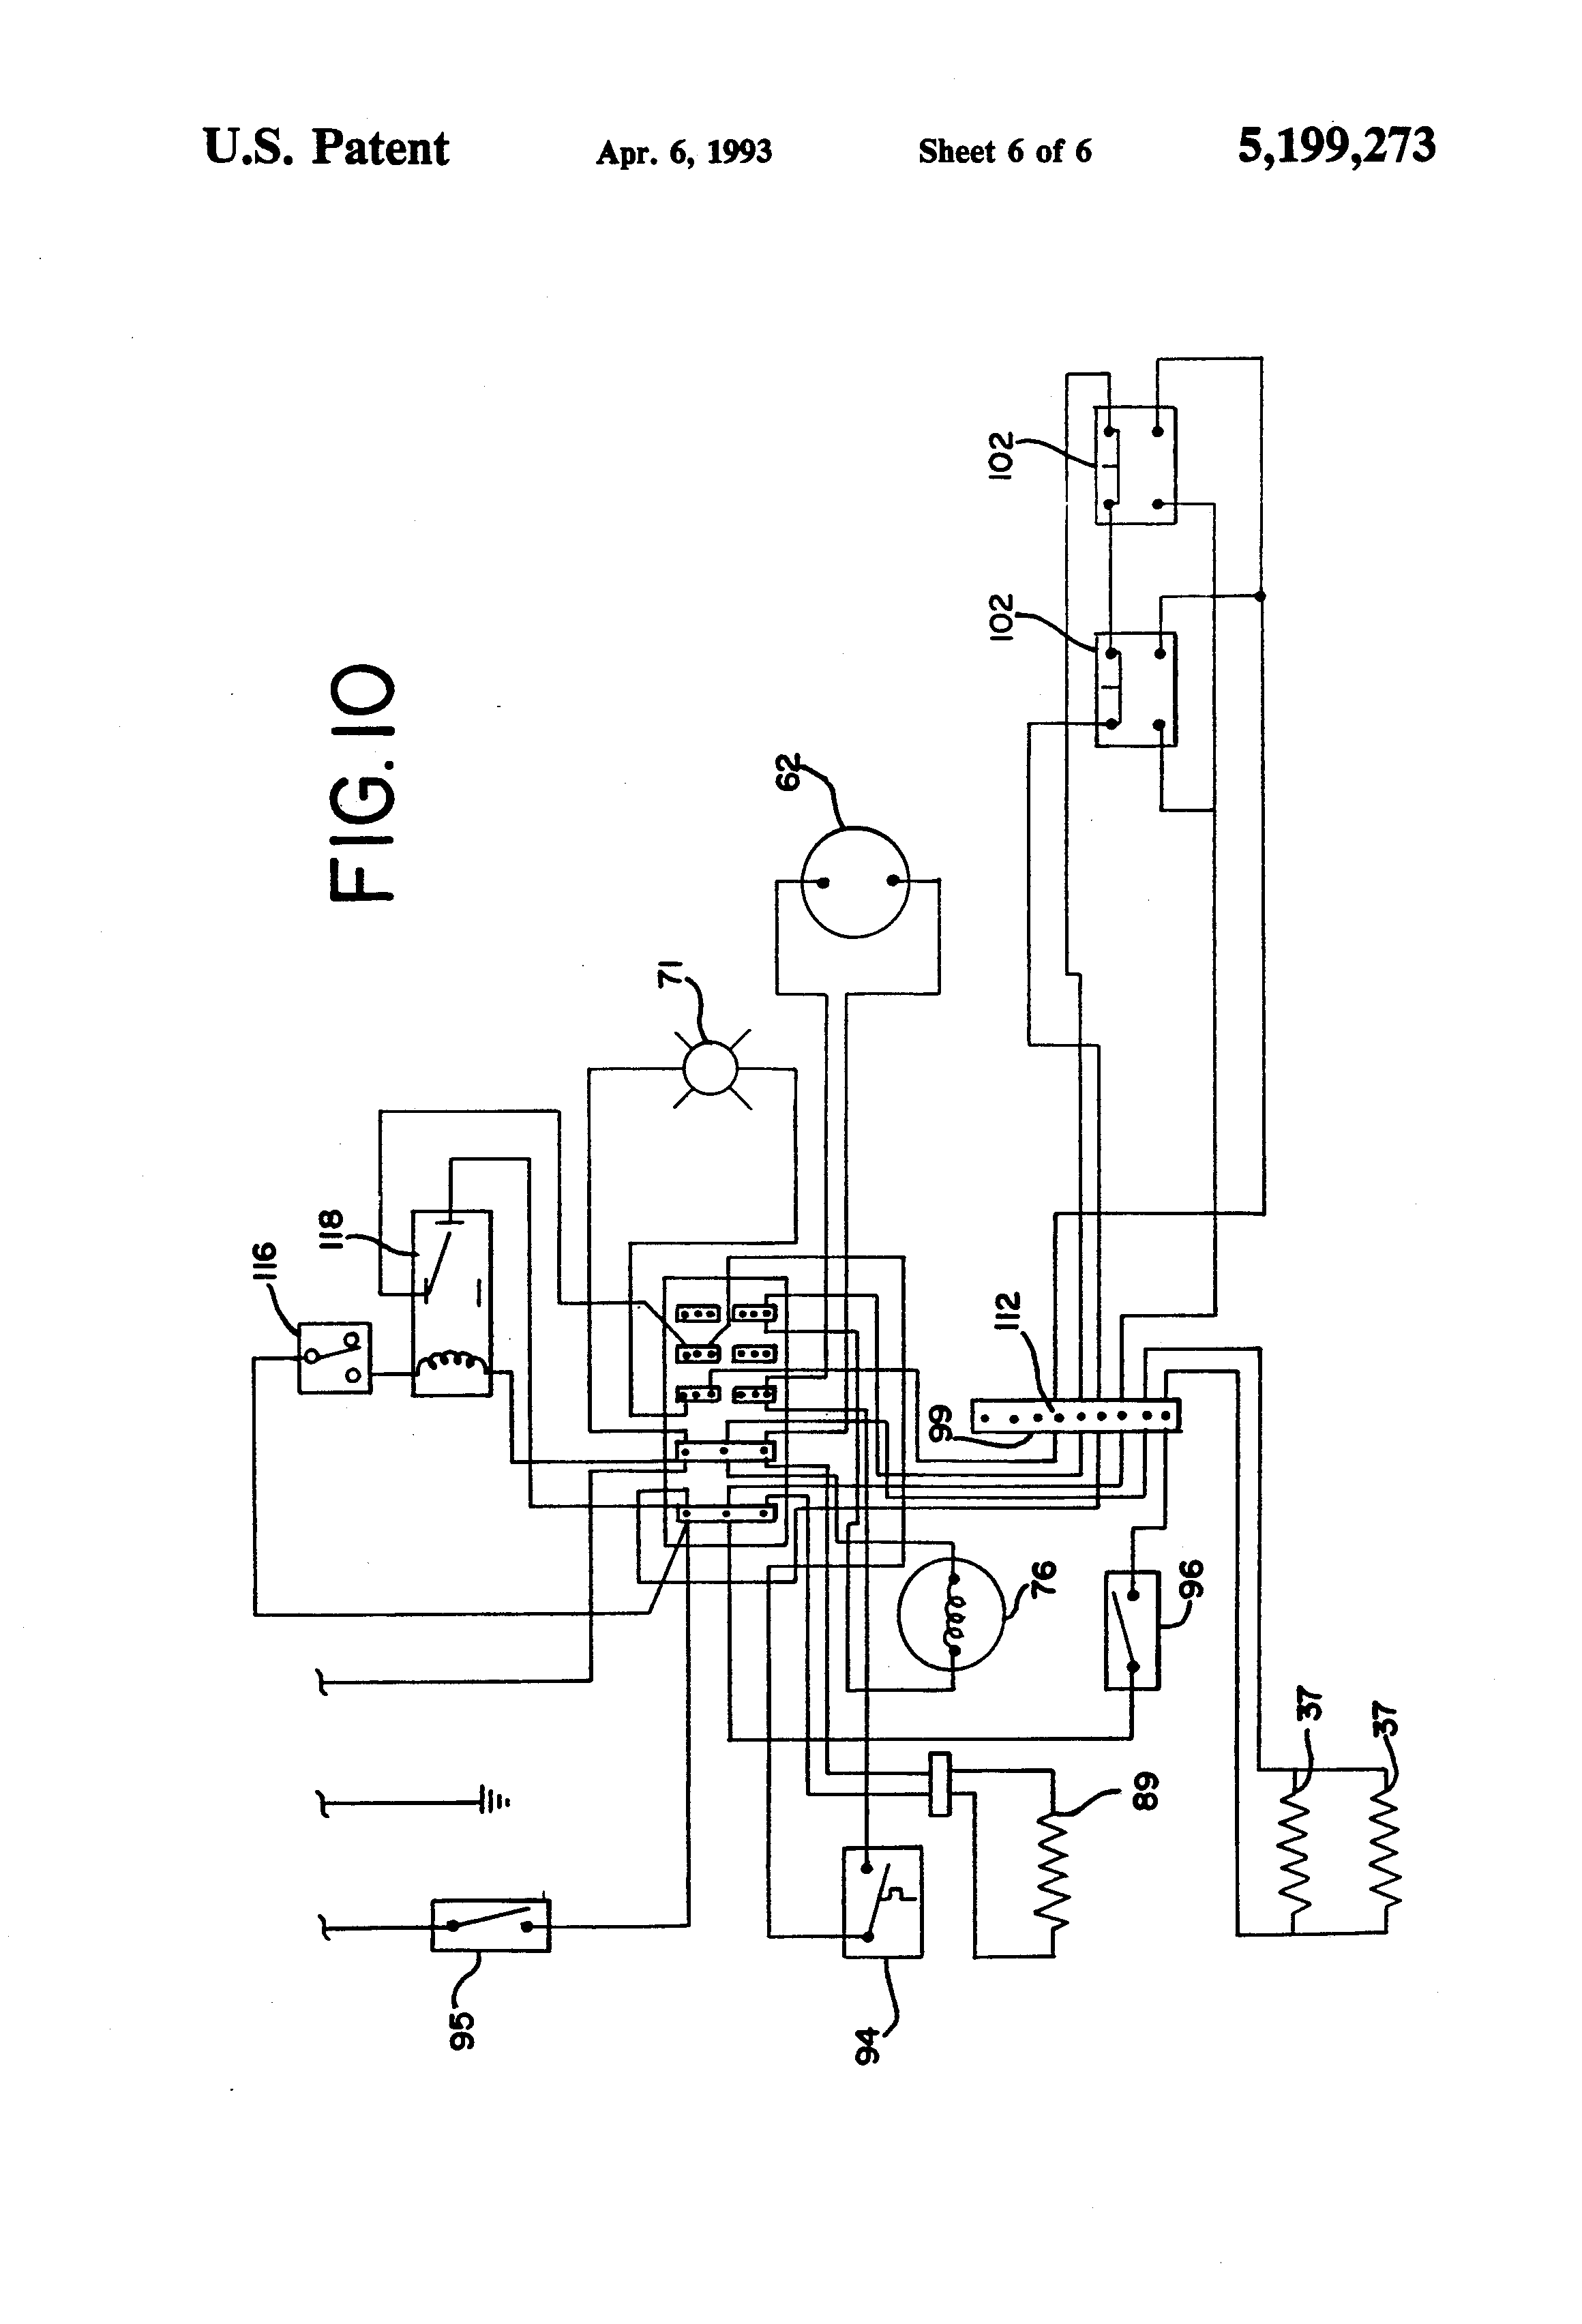 refrigeration condensing unit wiring diagram with Bohn Evaporator Wiring Diagram on Lennox Control Board Wiring Diagram besides Copeland Wiring Diagram in addition Car Electrical System Pdf Wiring Diagrams as well Wiring Diagrams For 12 Volt Air  pressor together with Evaporator Coil Diagnostic FAQs.